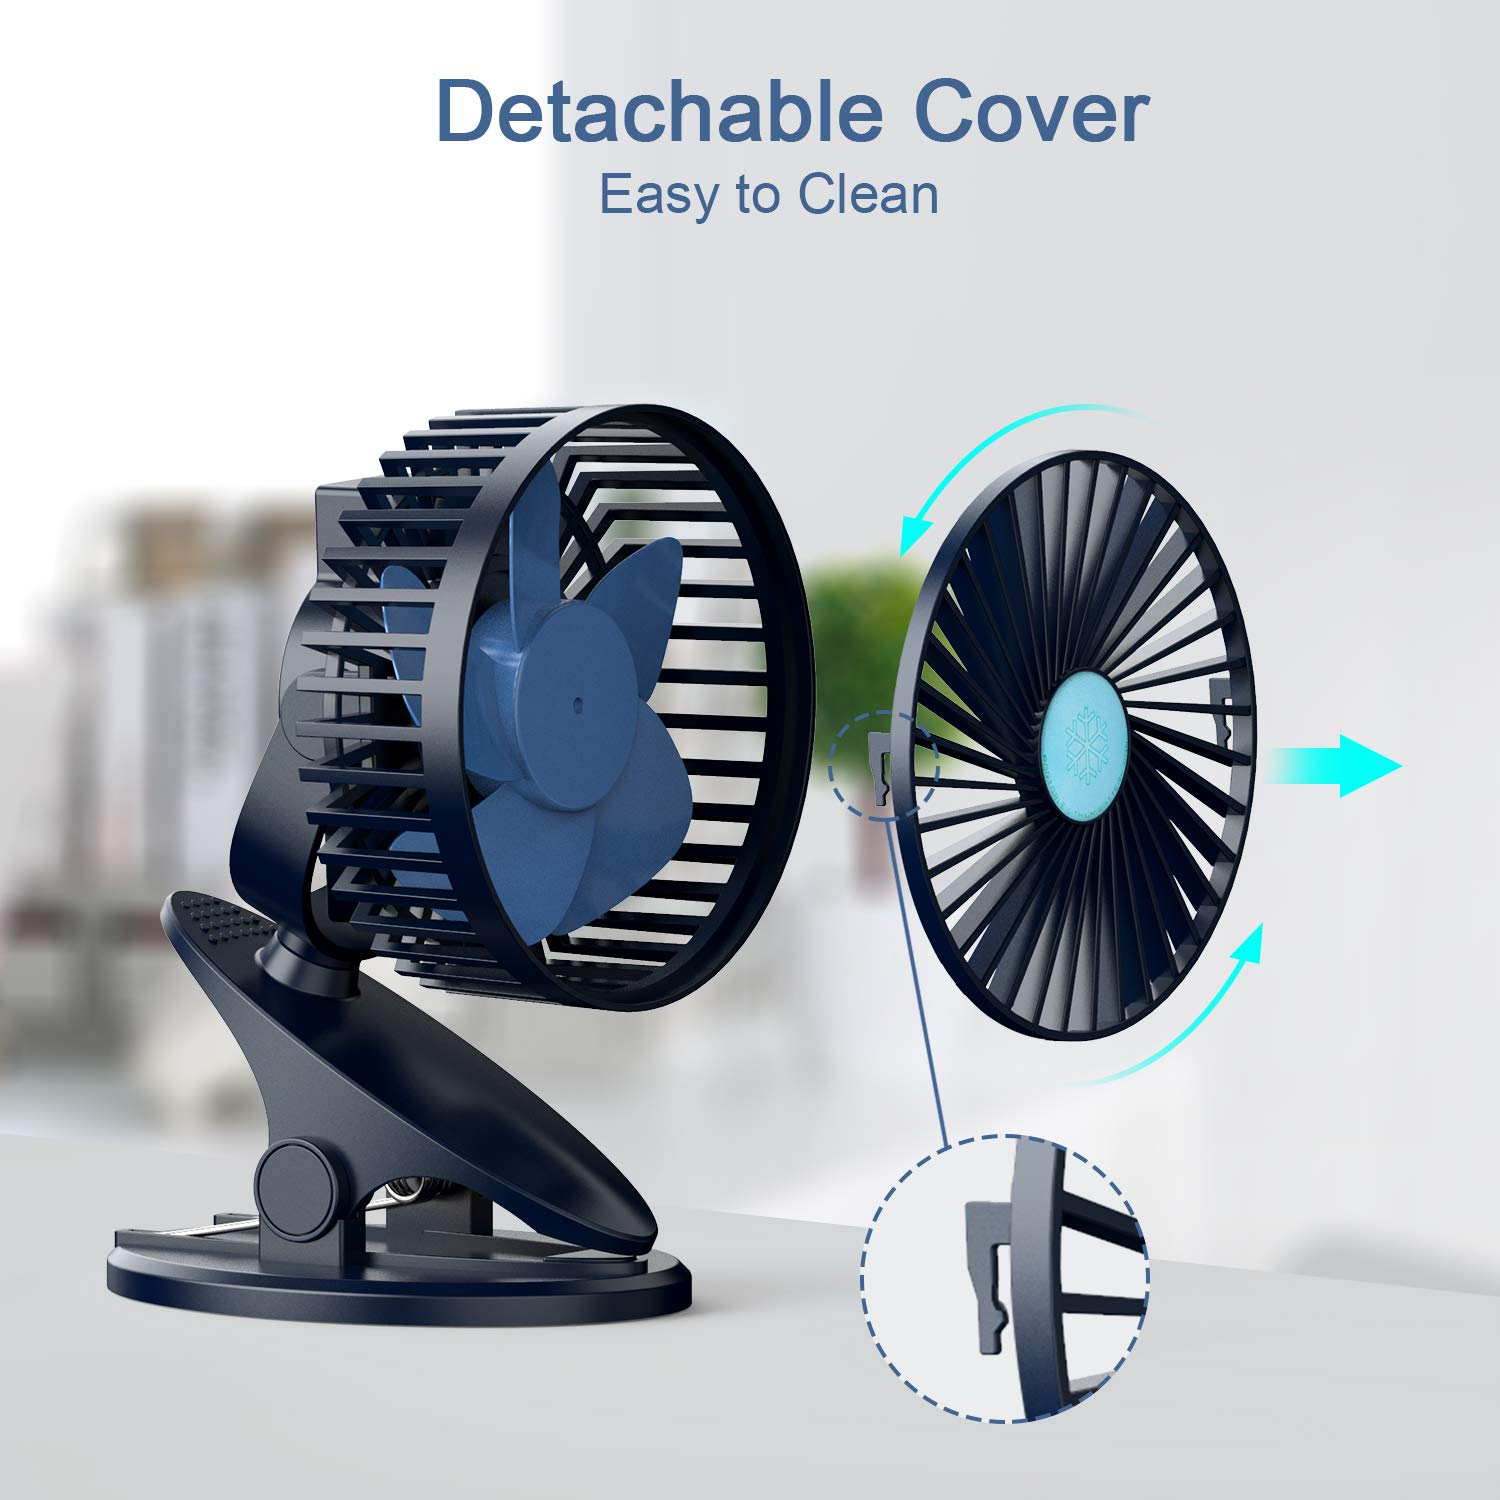 Stroller Fan, Clip On Fan, USB & Rechargeable Battery OperatedMini Fans with 3 Speeds, Personal Cooling Fan 360°Adjustable Rotating, Super Quiet, Ideal for Home, Office Desk, Travelling & Camping by NUÜR (Image #4)